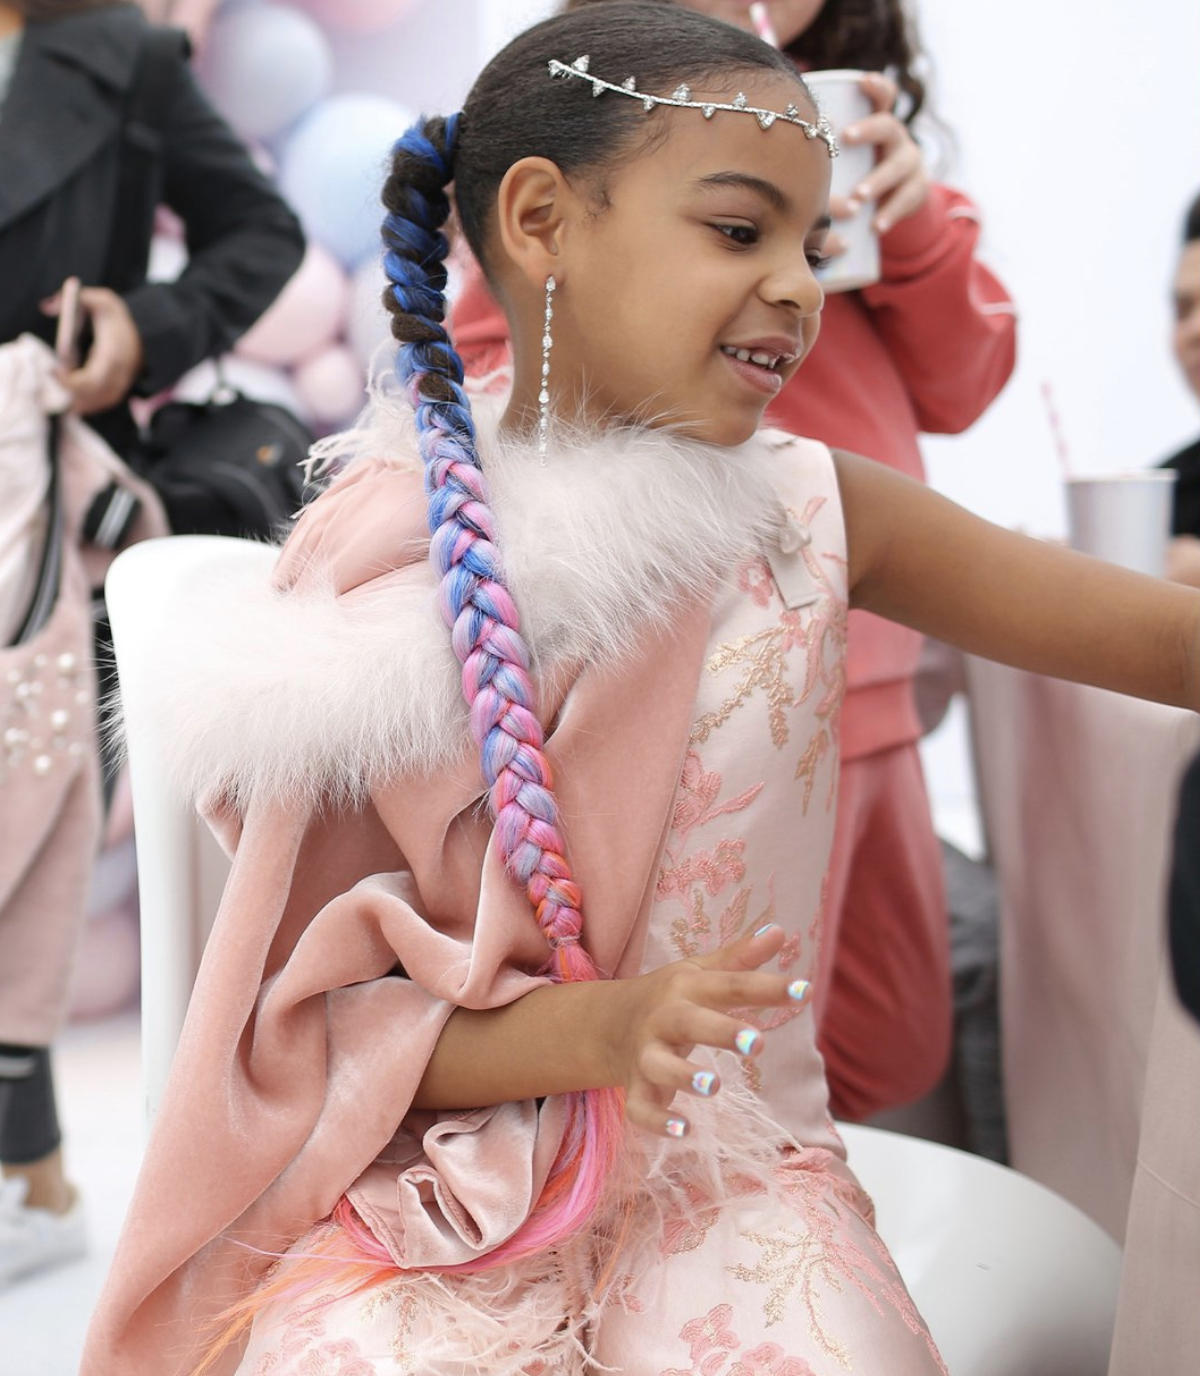 Beyoncé Asserts Blue Ivy Carter Is a 'Cultural Icon' in Trademark Battle, Which She Is